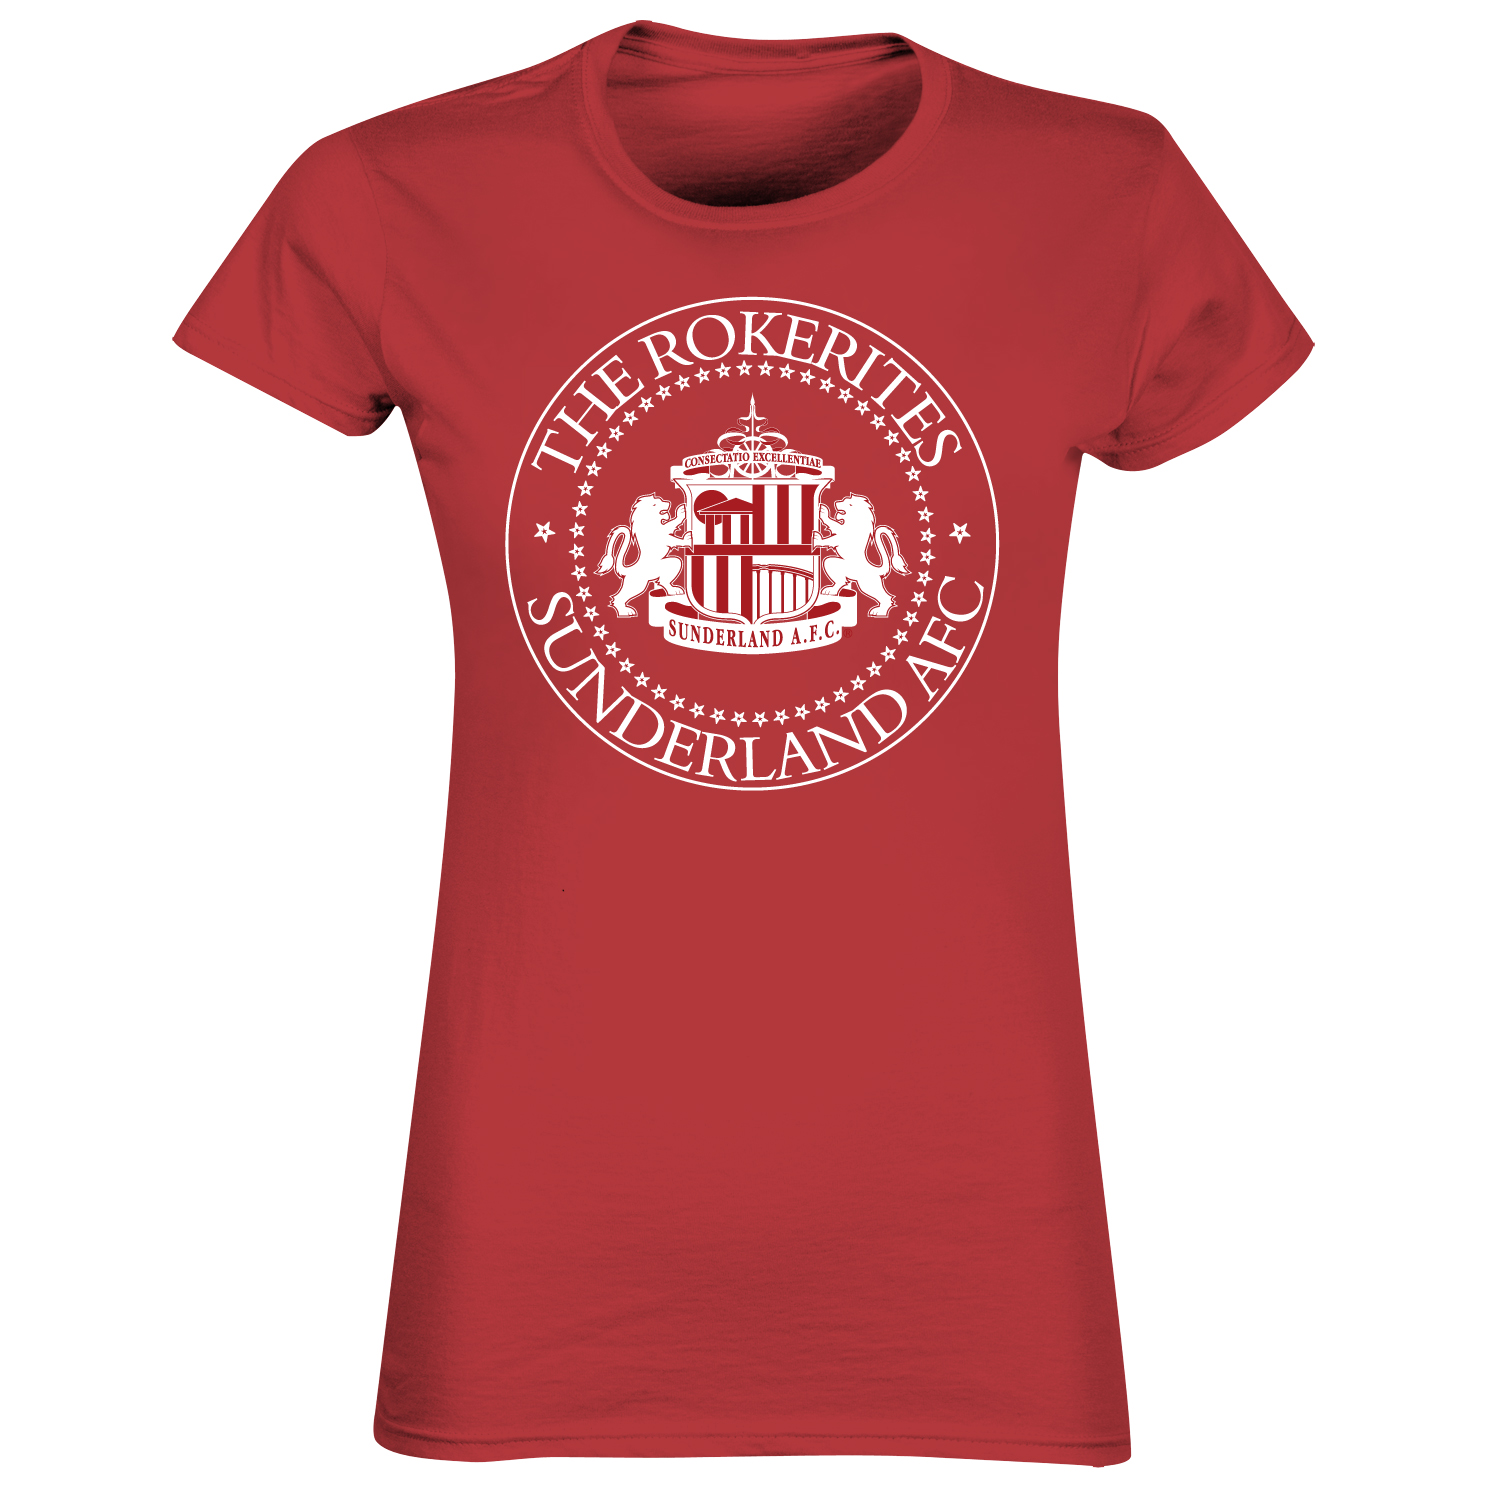 Sunderland 2for£20 Rokerites T-Shirt - Red - Womens